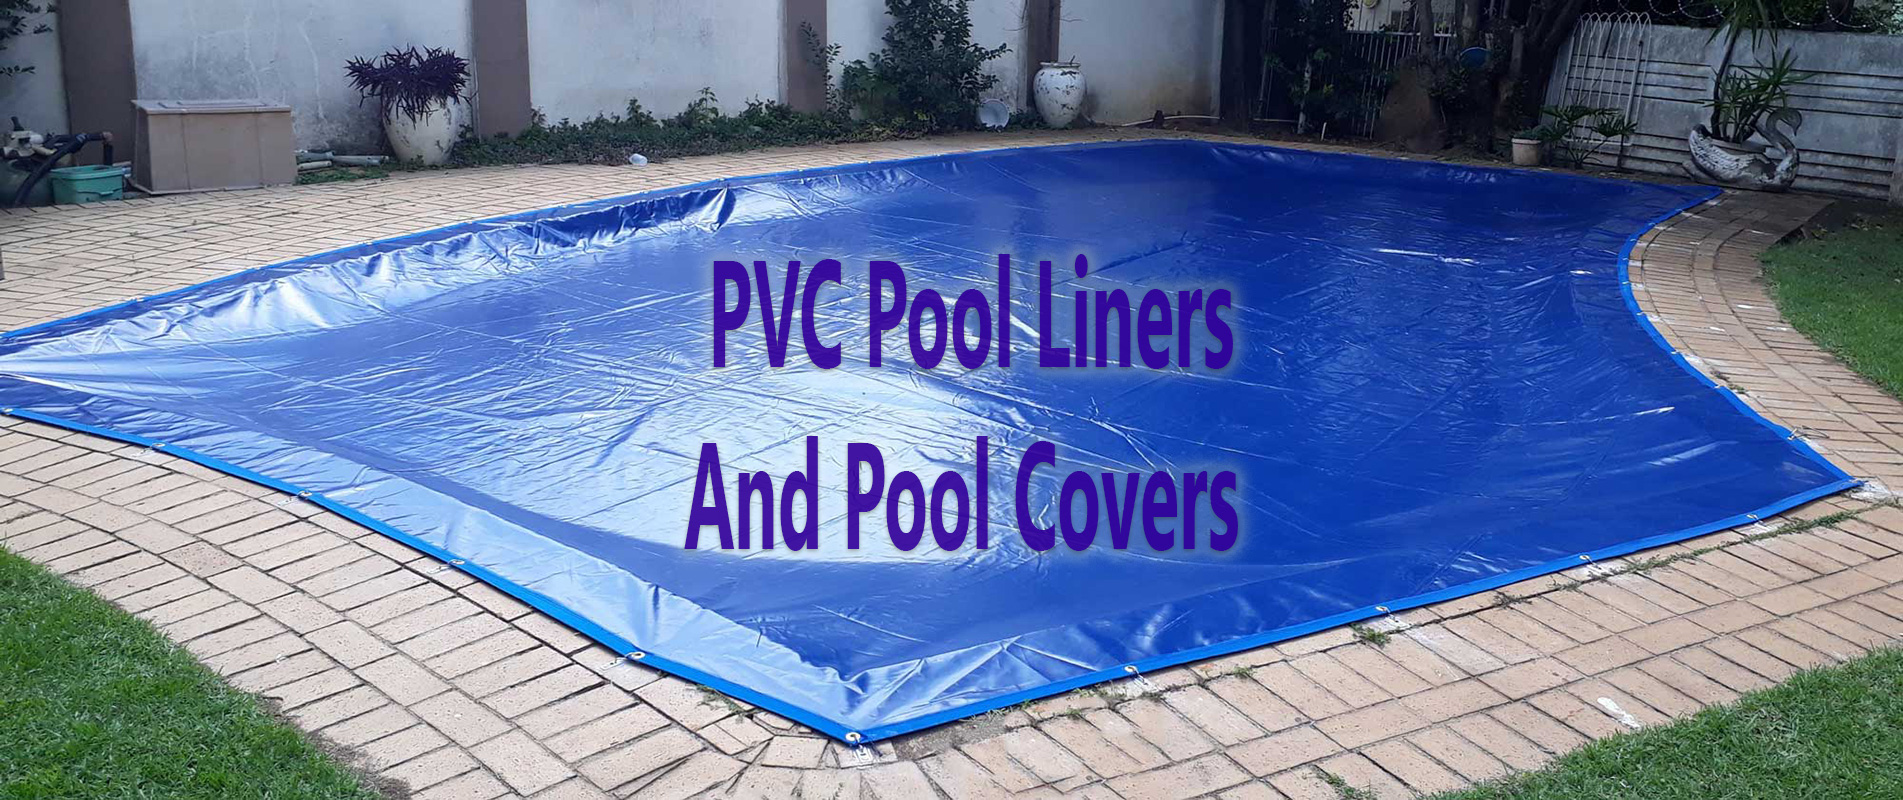 Pool liners and covers